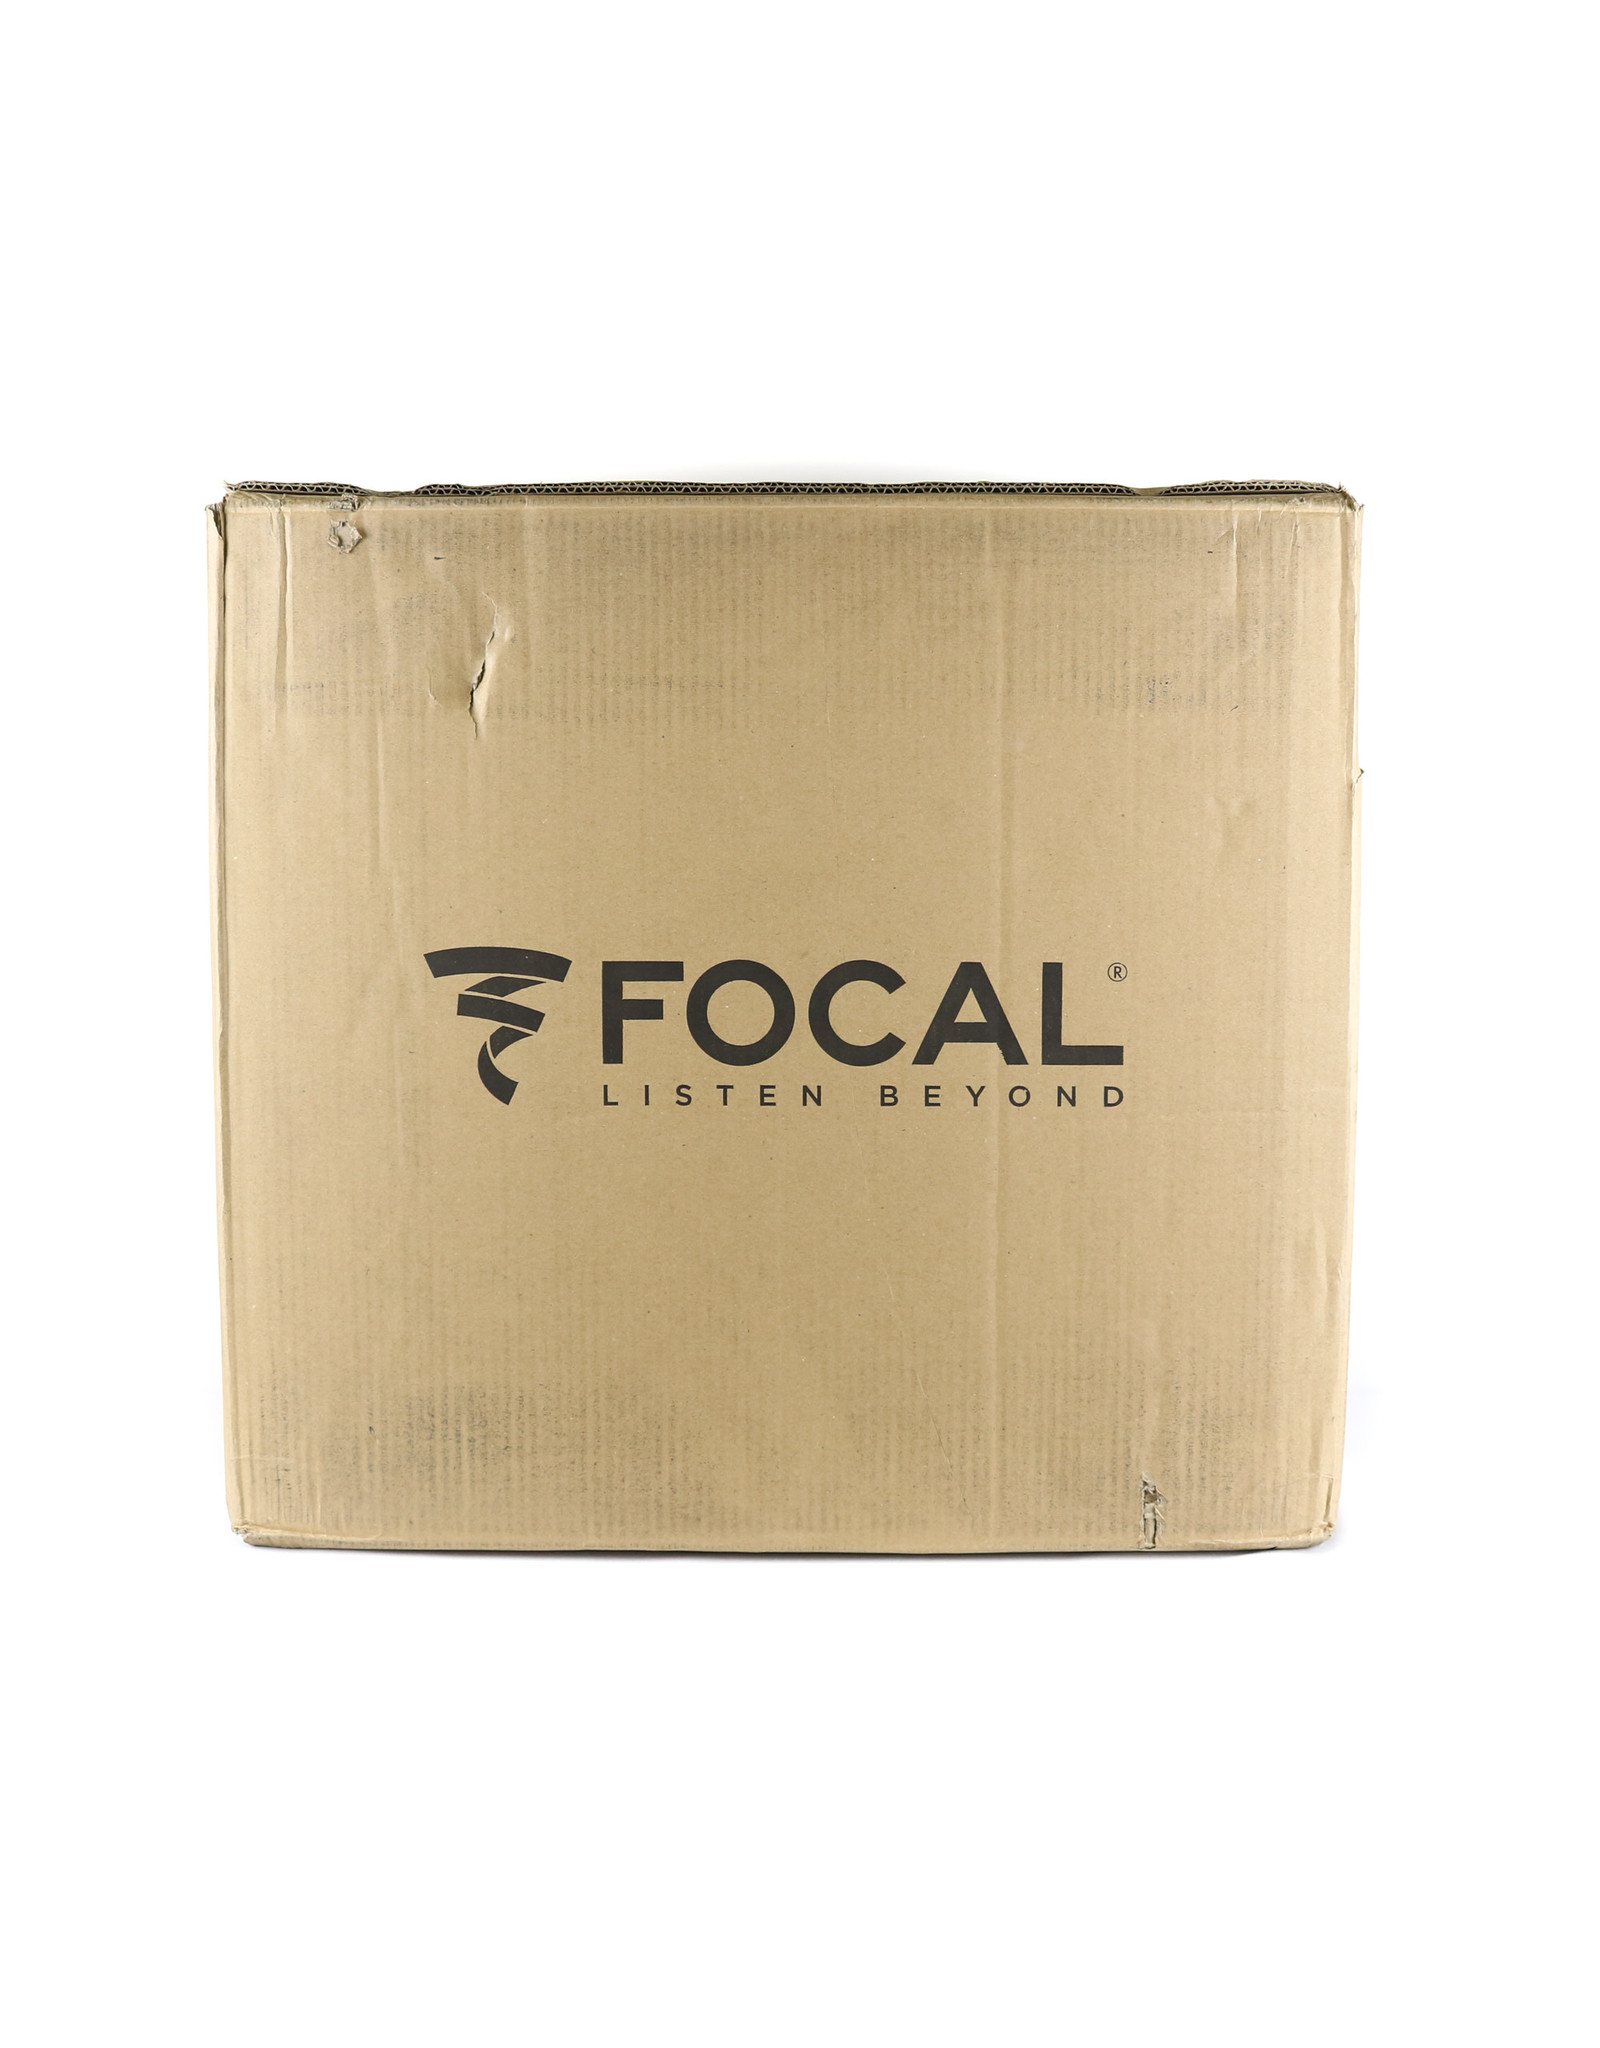 Focal Focal Chora 806 Dark Wood Bookshelf Speakers EX-DEMO (Not Used)